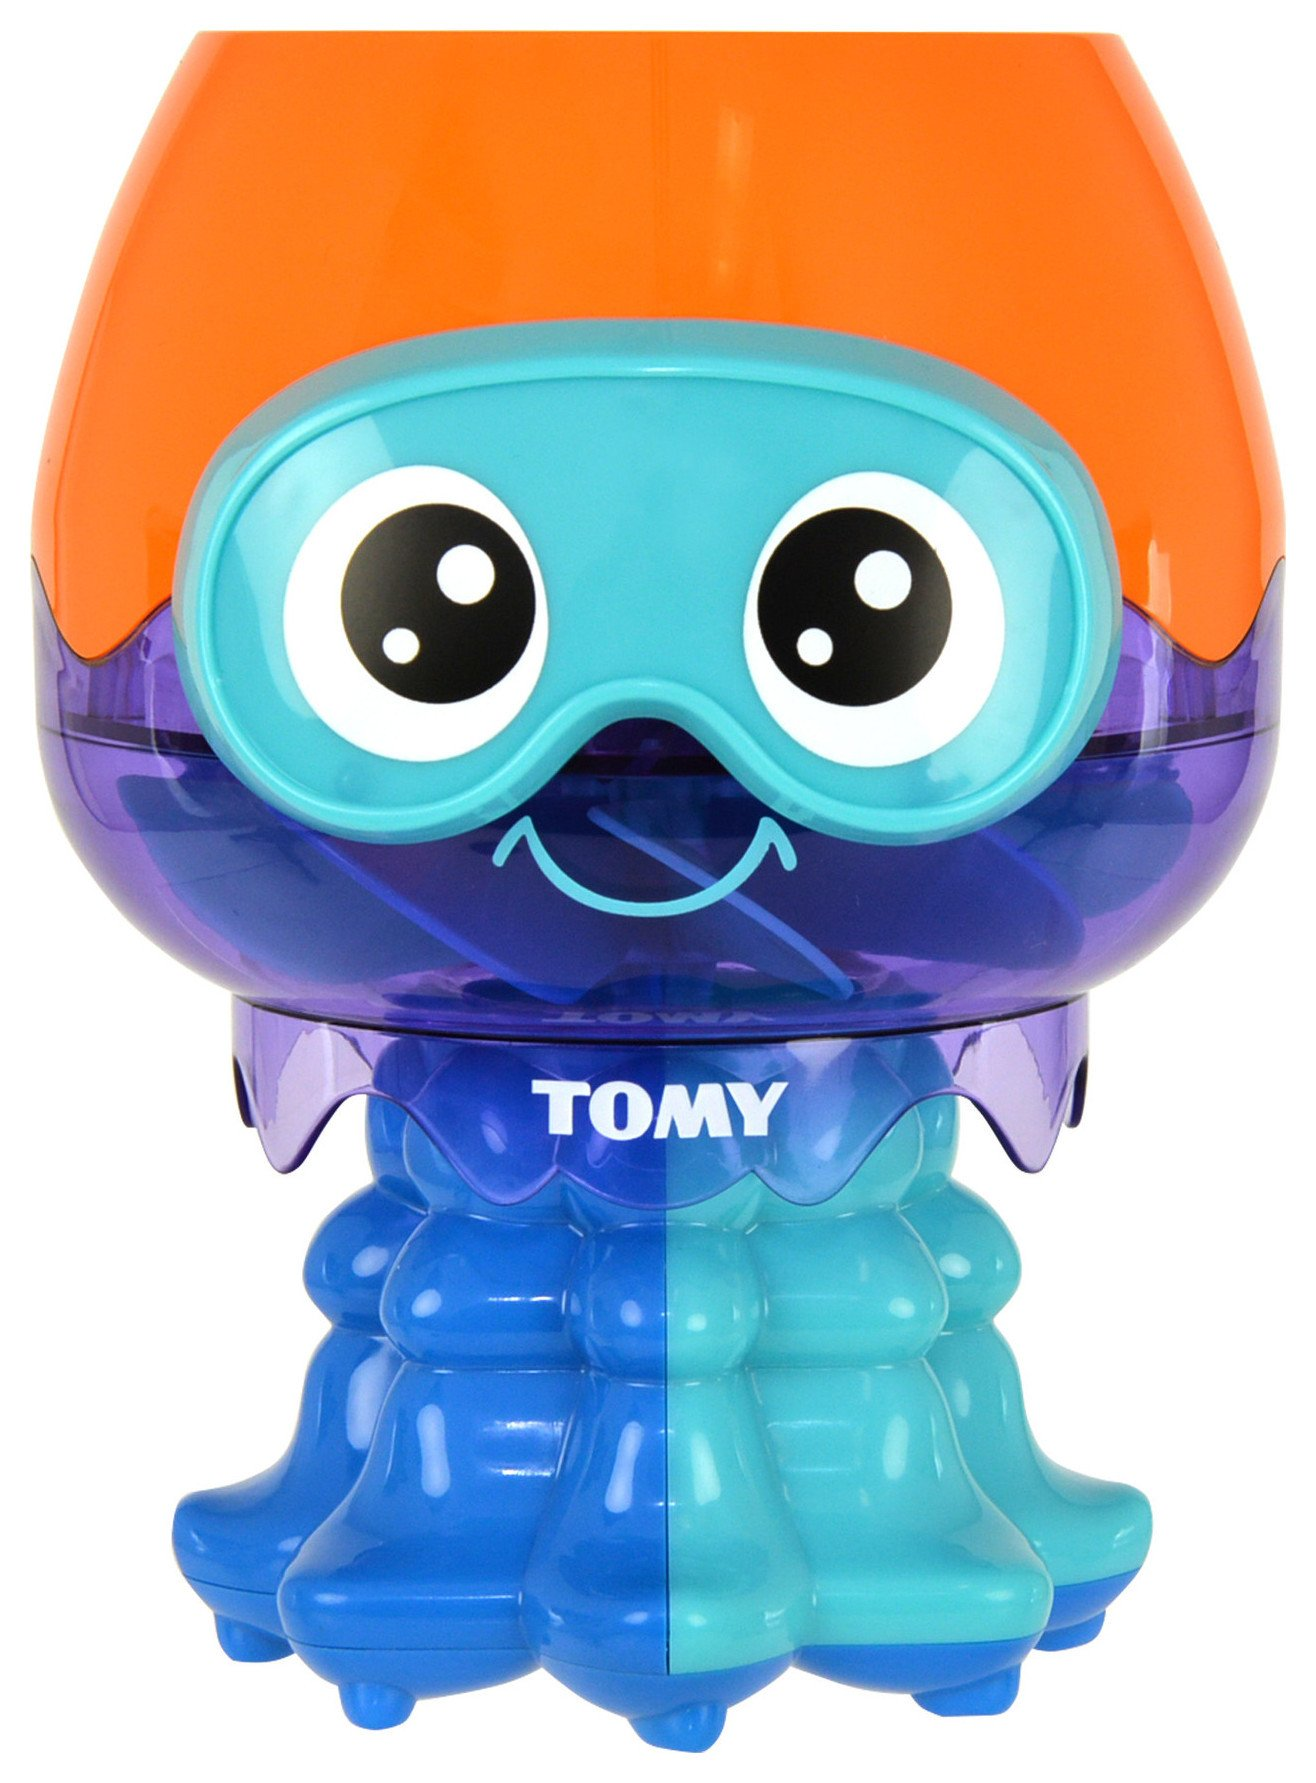 TOMY Toomies Spin & Splash Jellyfish Bath Toy